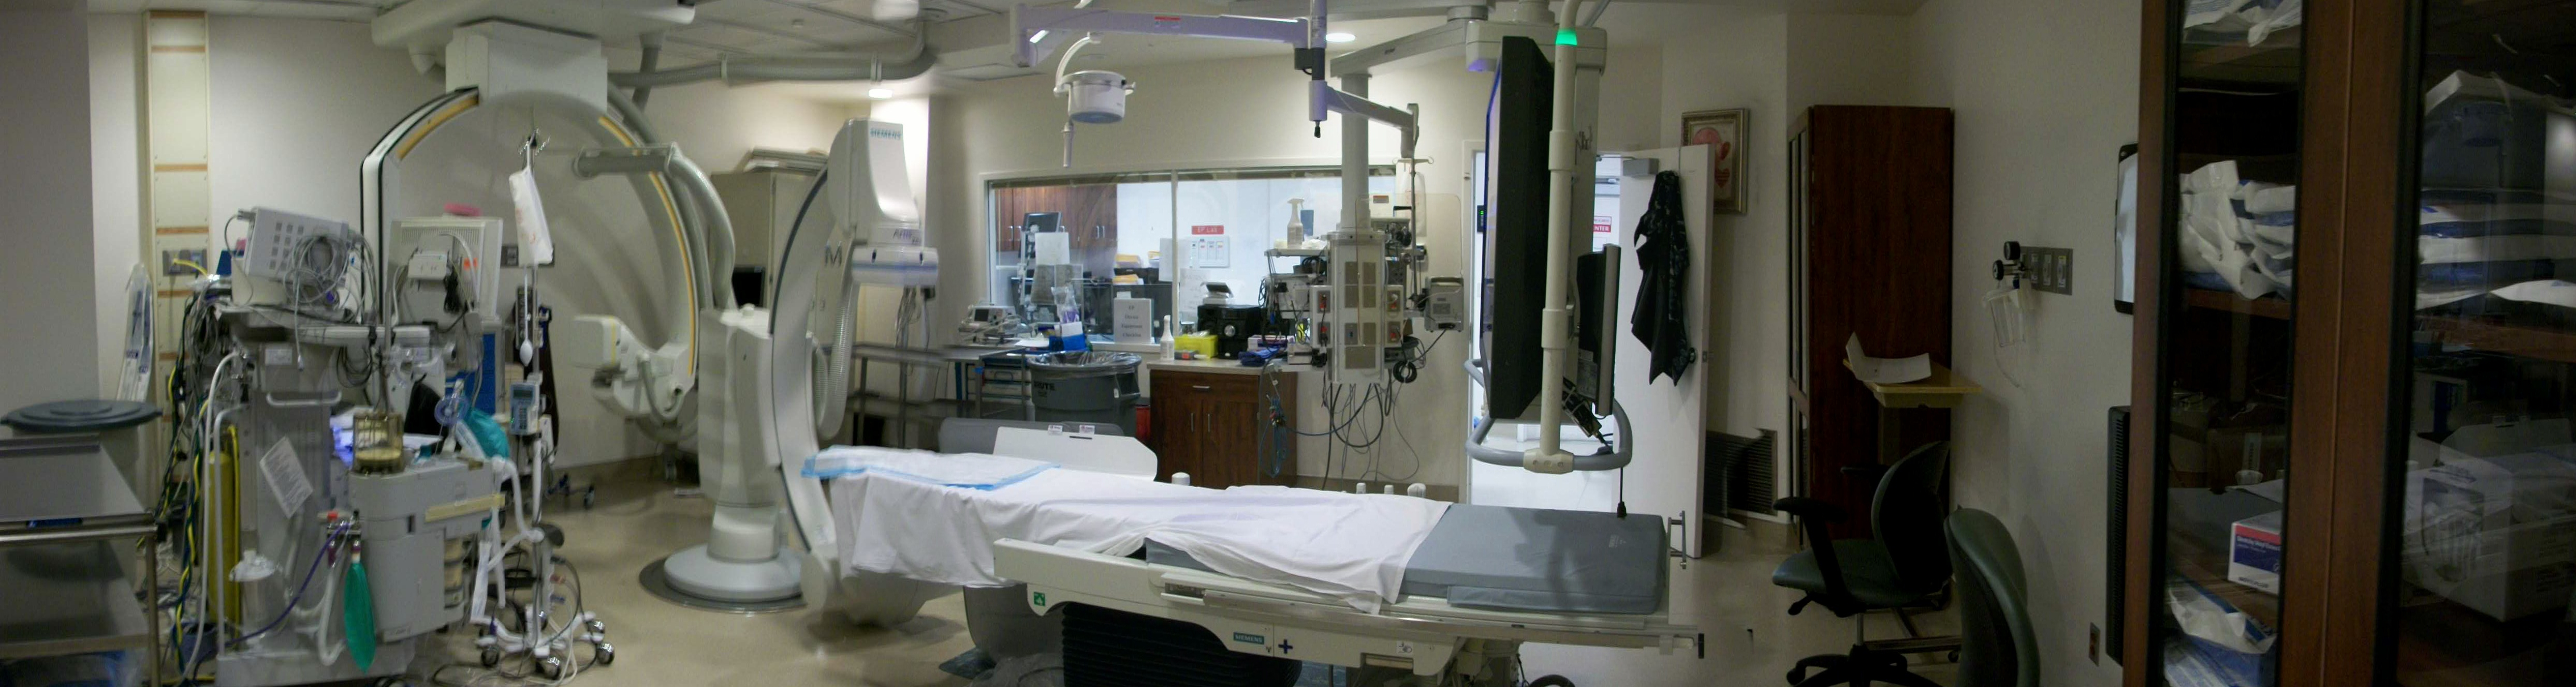 zanesville-ohio-architects-apg-cath-lab-genesis-healthcare